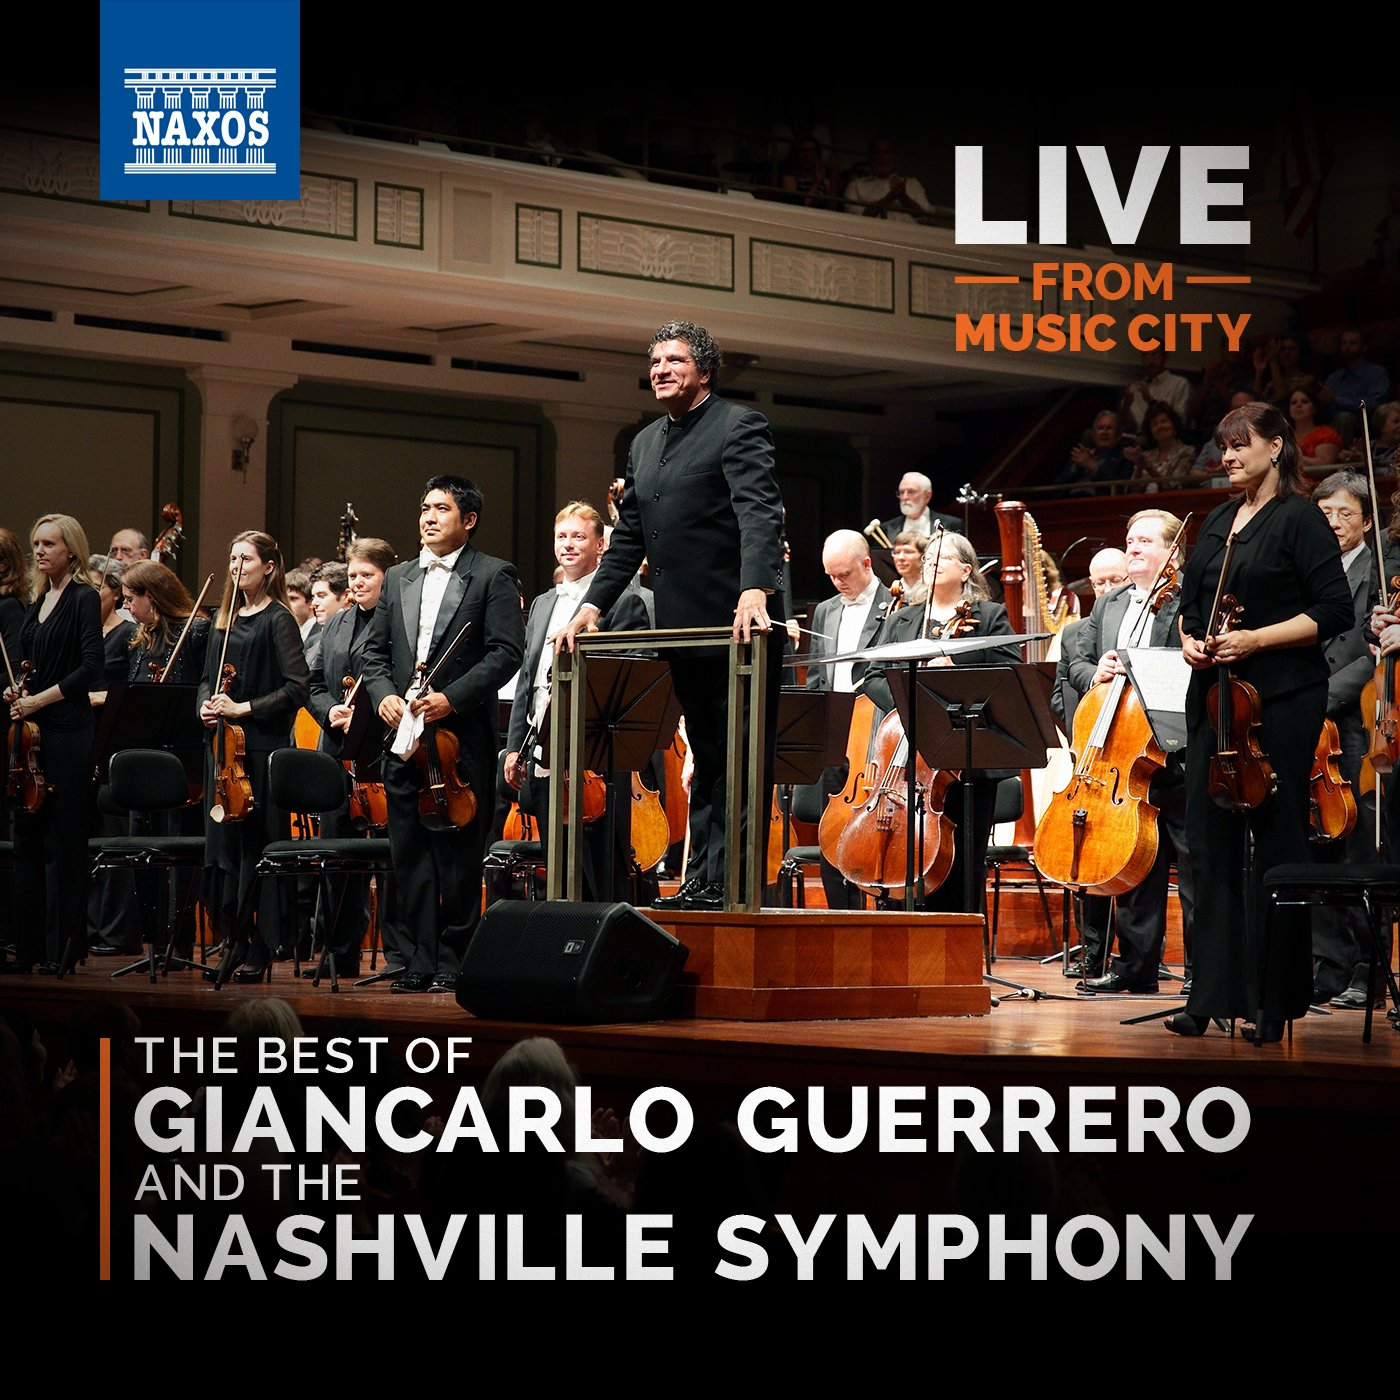 LIVE from Music City: The Best of Giancarlo Guerrero & The Nashville Symphony